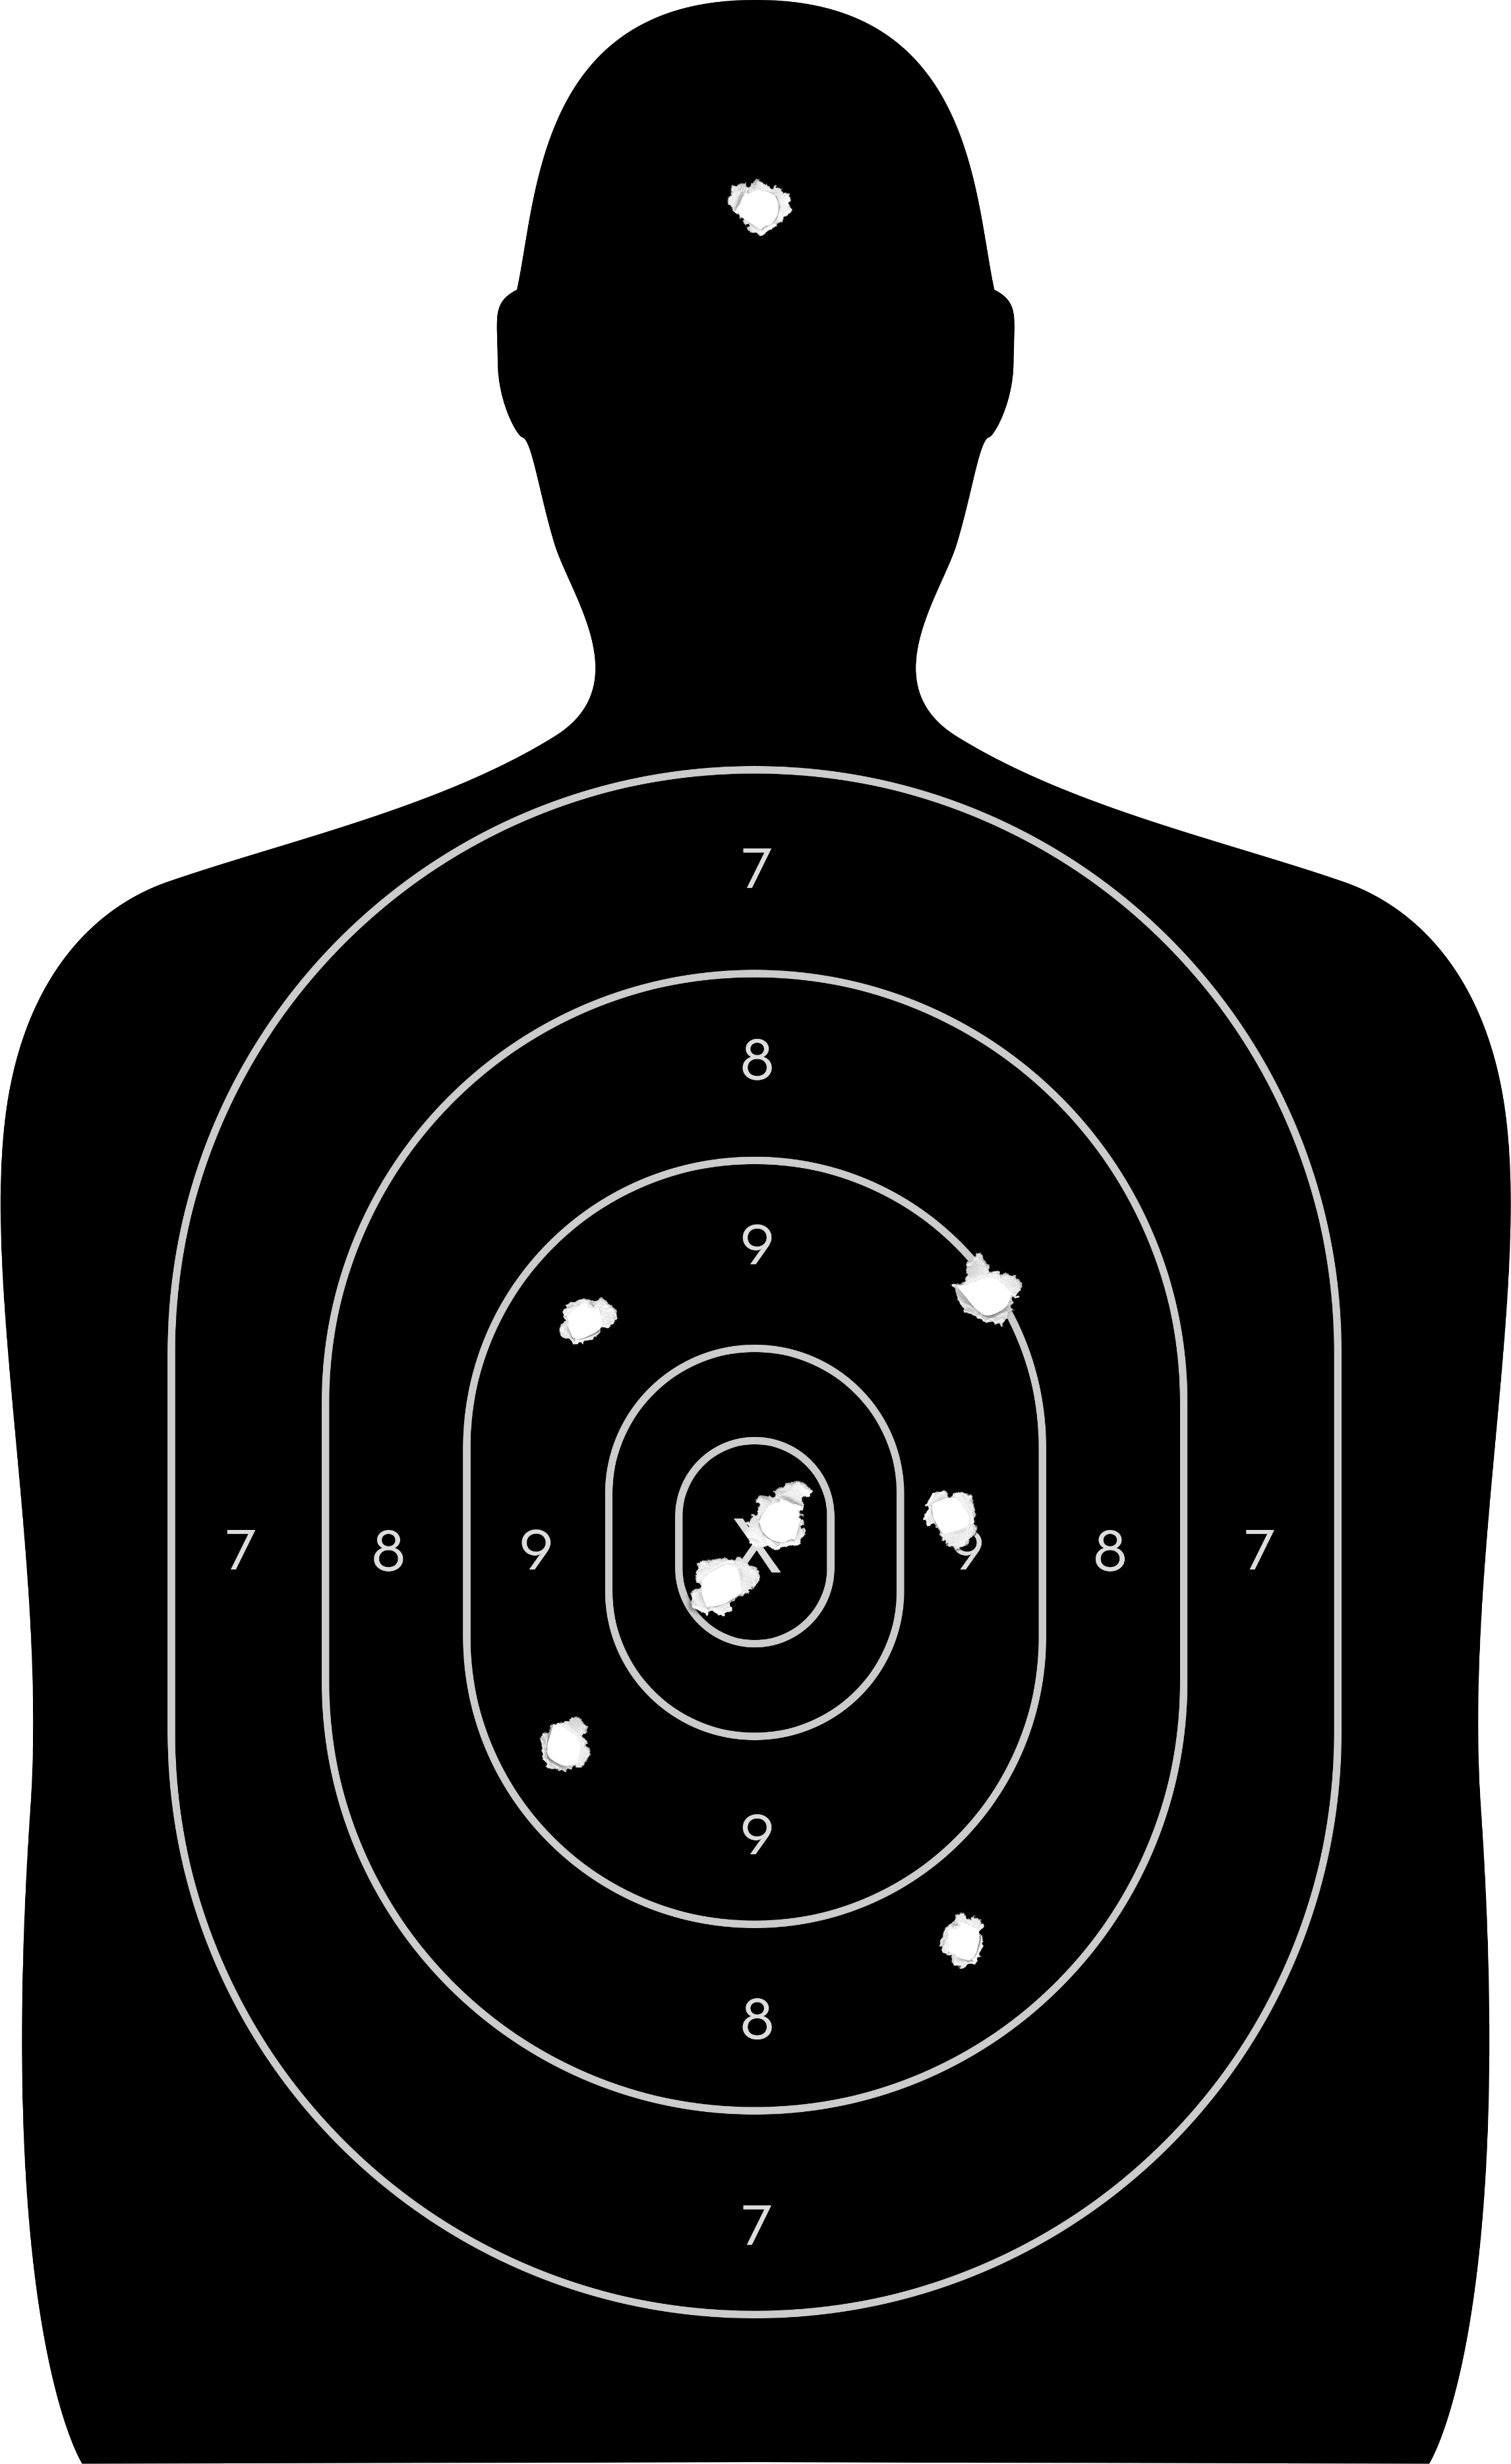 Glock 43 19 Mag Extensions Hyve Technologies Parts Diagram If You Would Like To Recieve News About Future